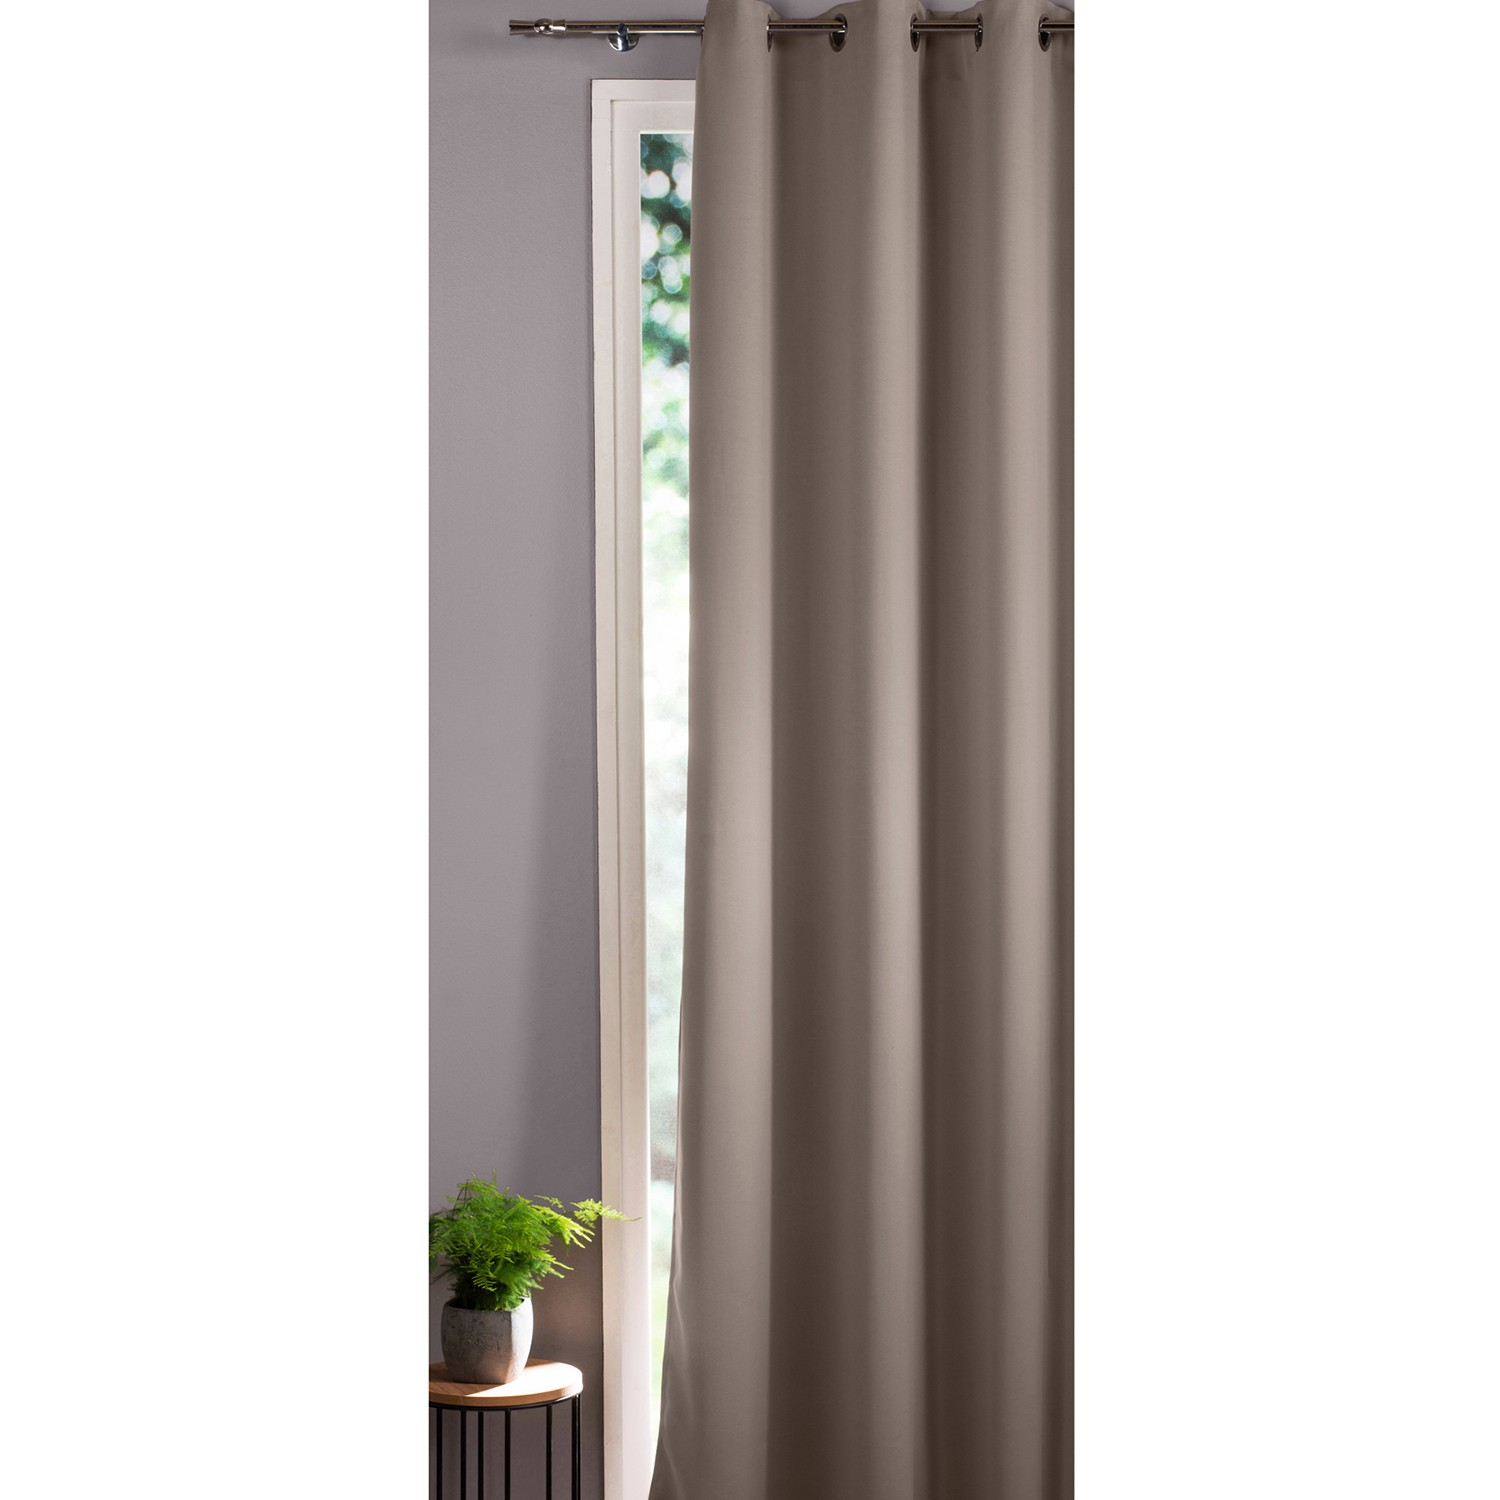 rideaux occultants taupe good rideau nabucco taupe x cm leroy merlin rideau occultant with. Black Bedroom Furniture Sets. Home Design Ideas